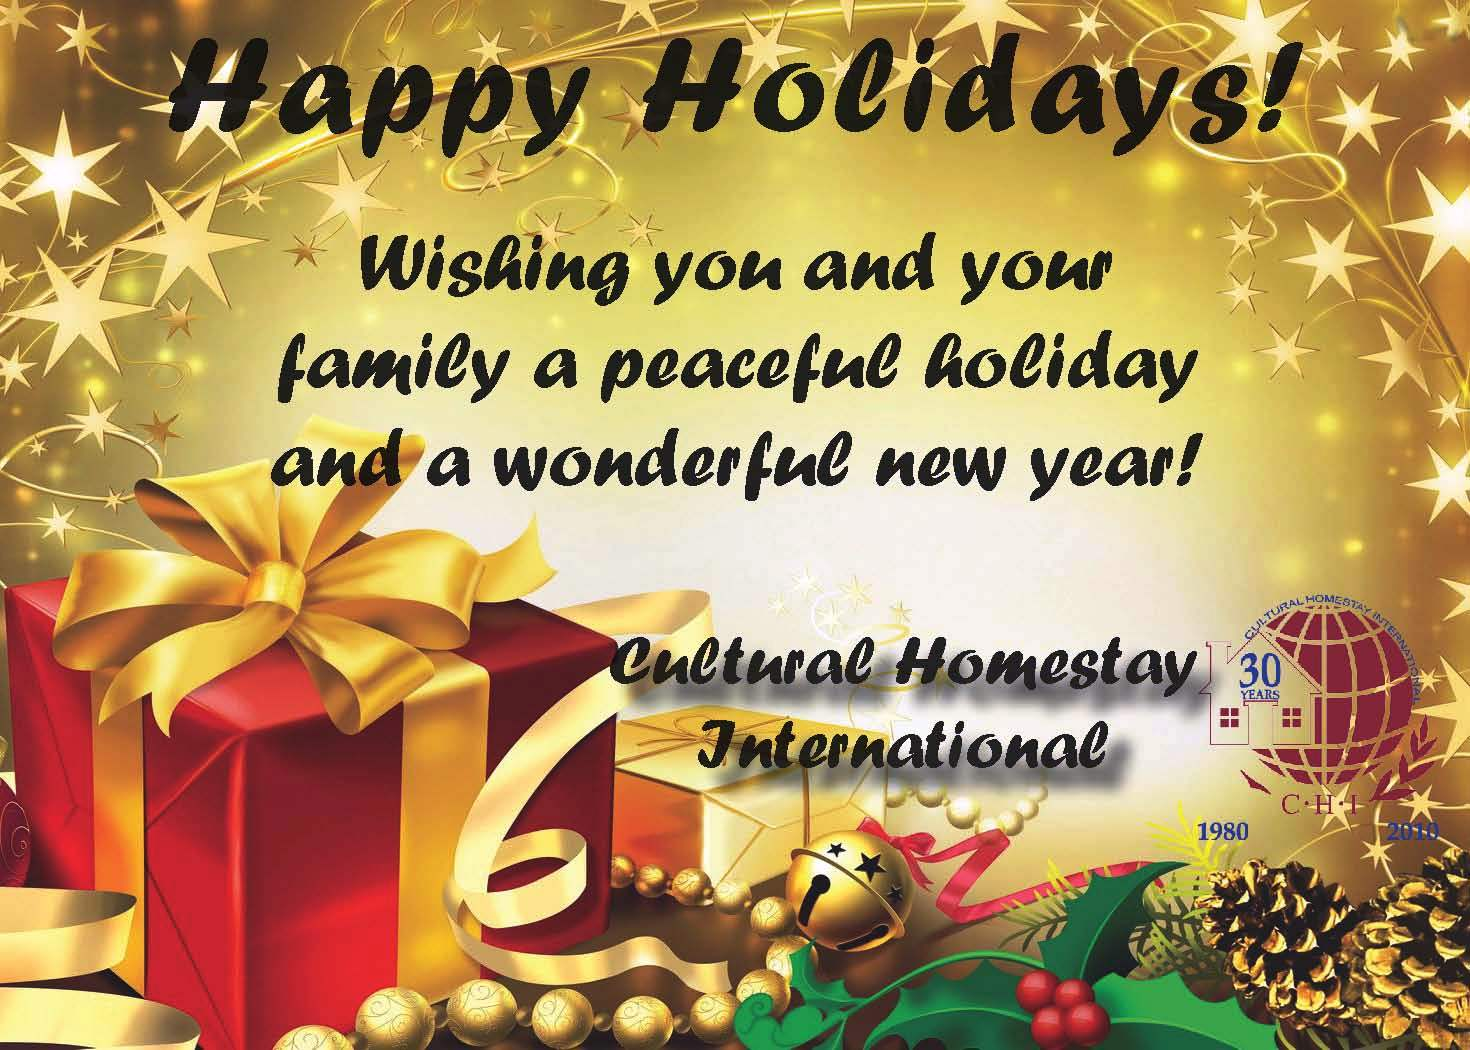 Happy Holidays From CHI CHI News